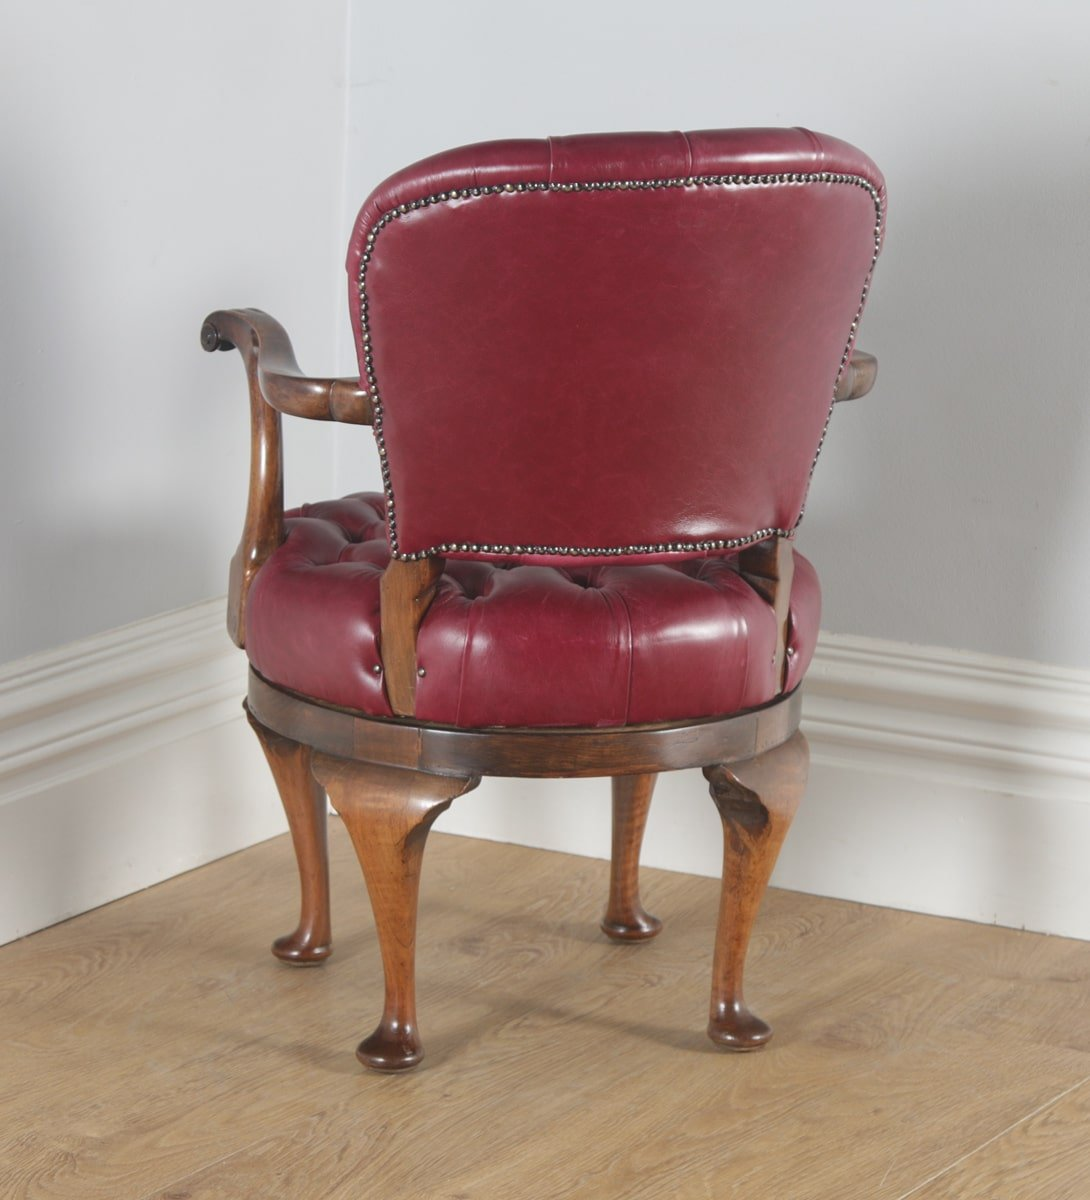 revolving chair in english lawn covers amazon antique queen anne style walnut and red leather